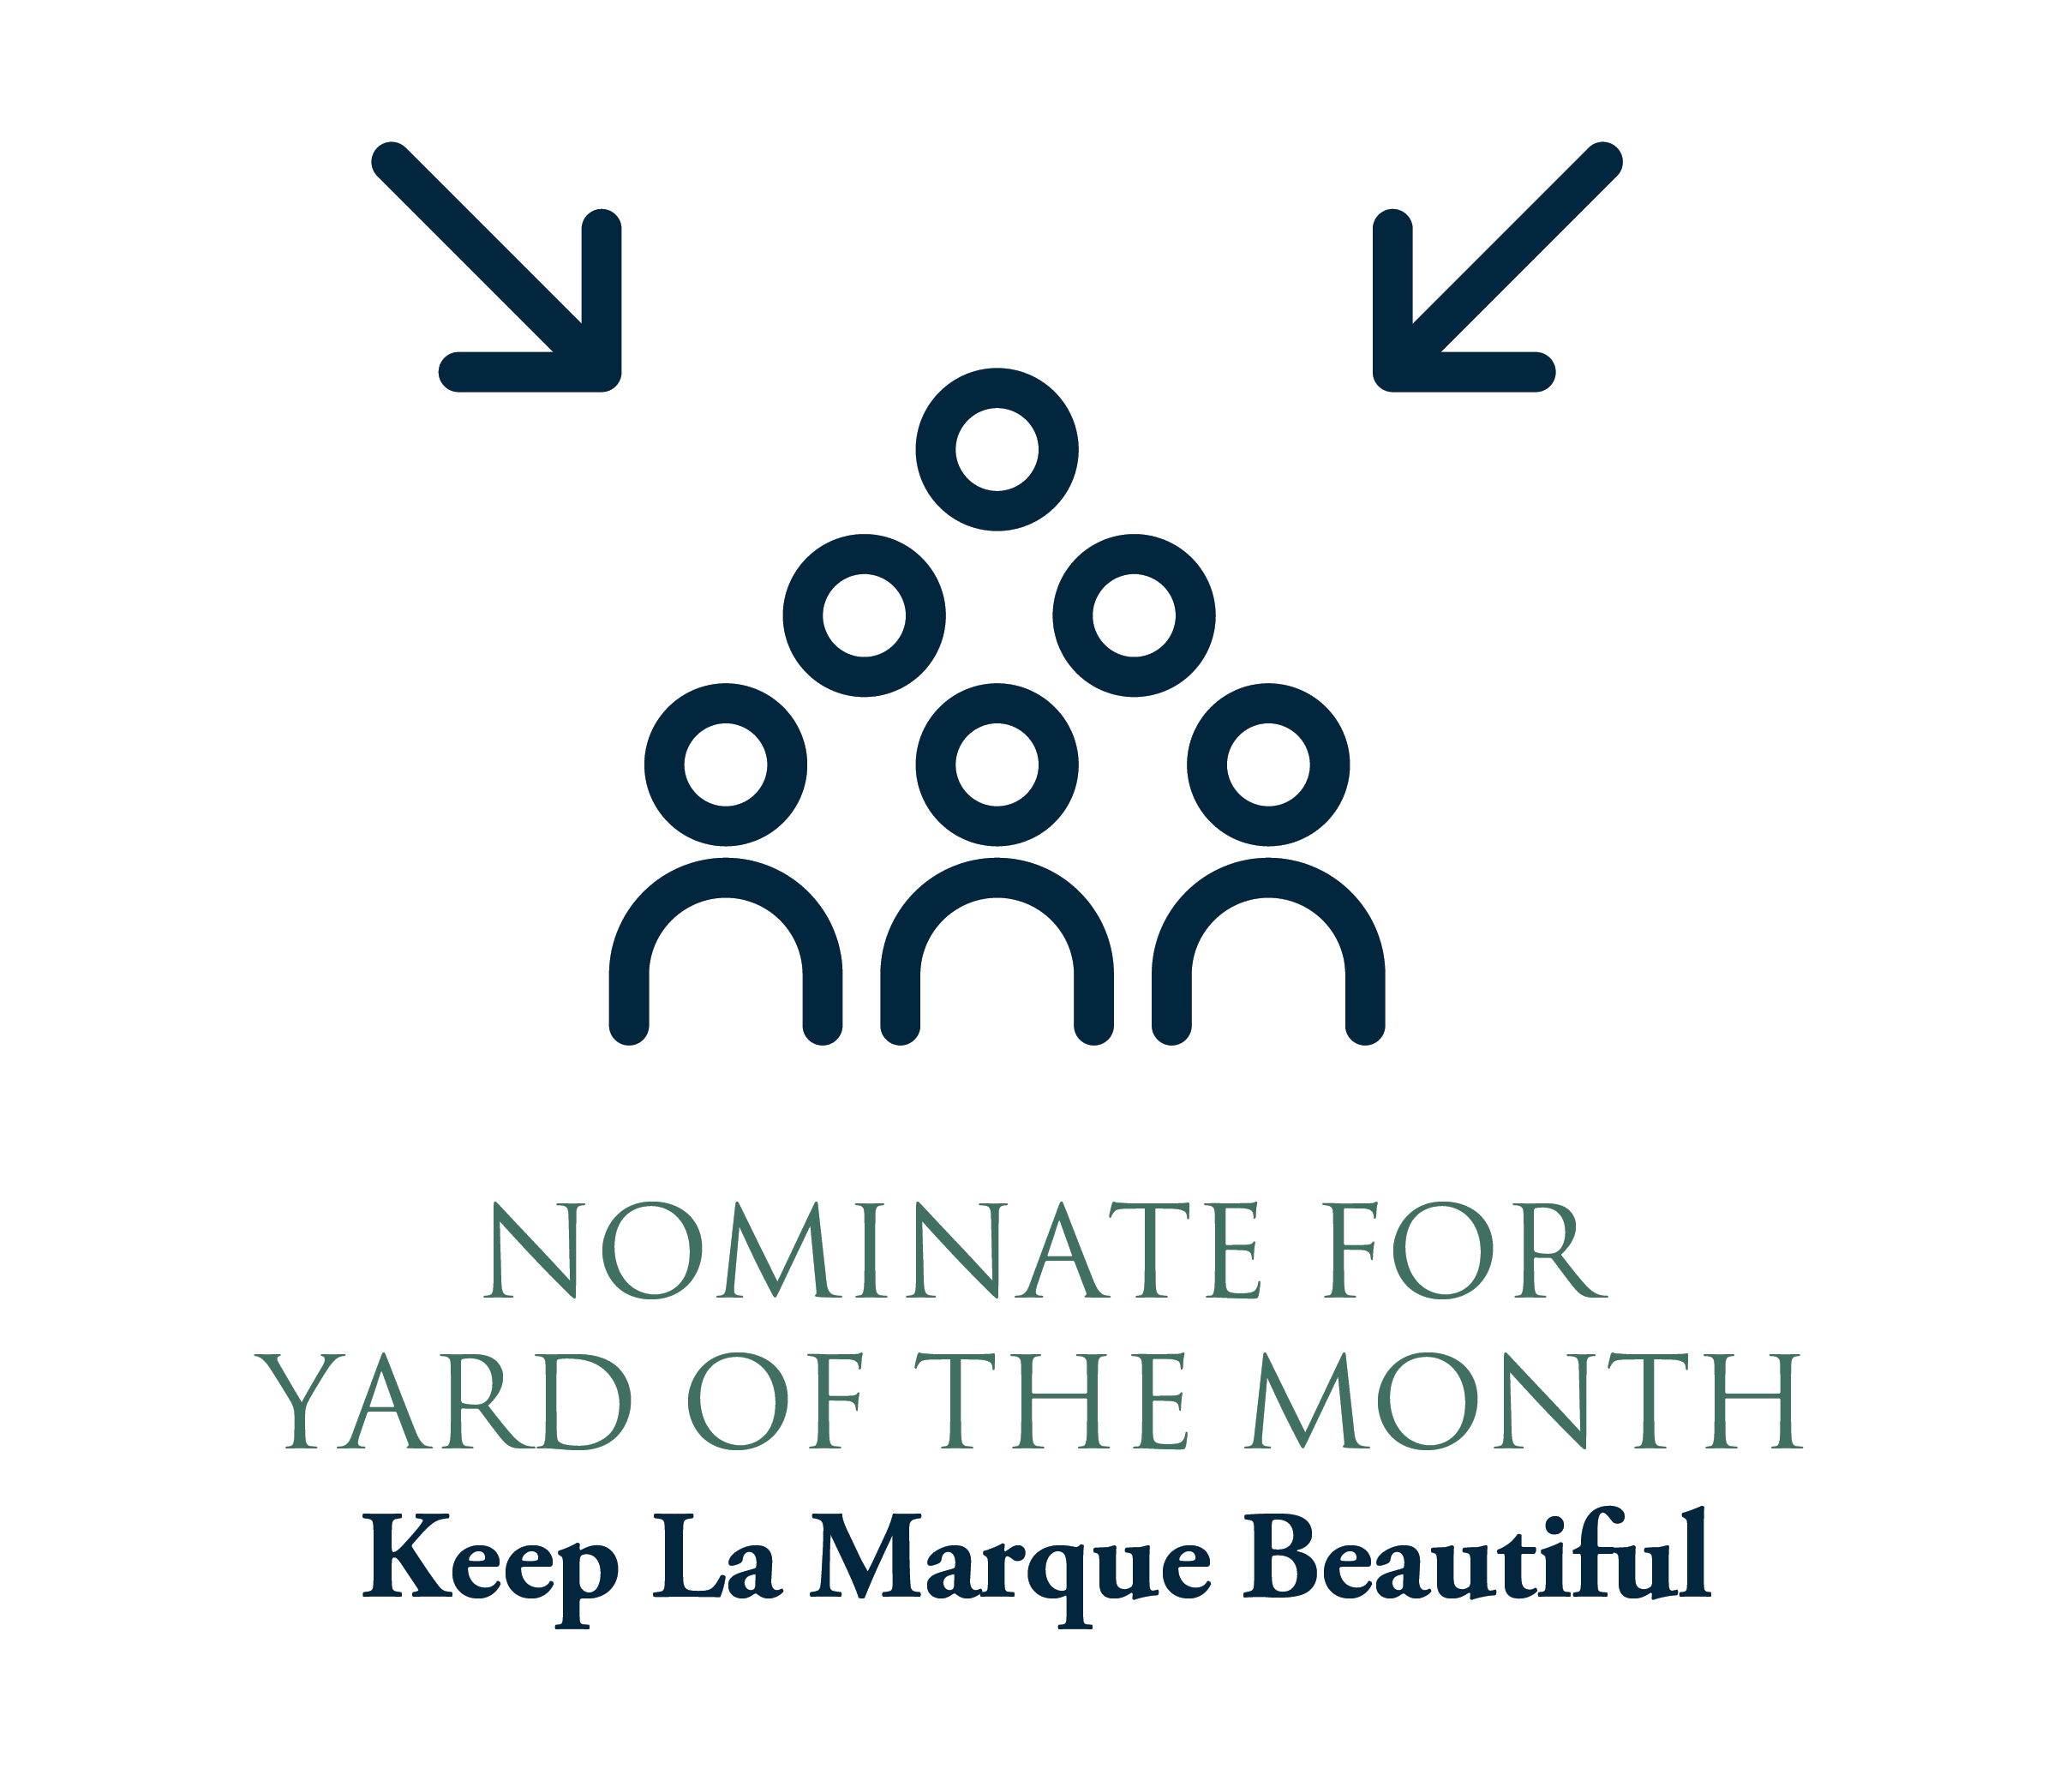 Nominate for Yard of the Month graphic